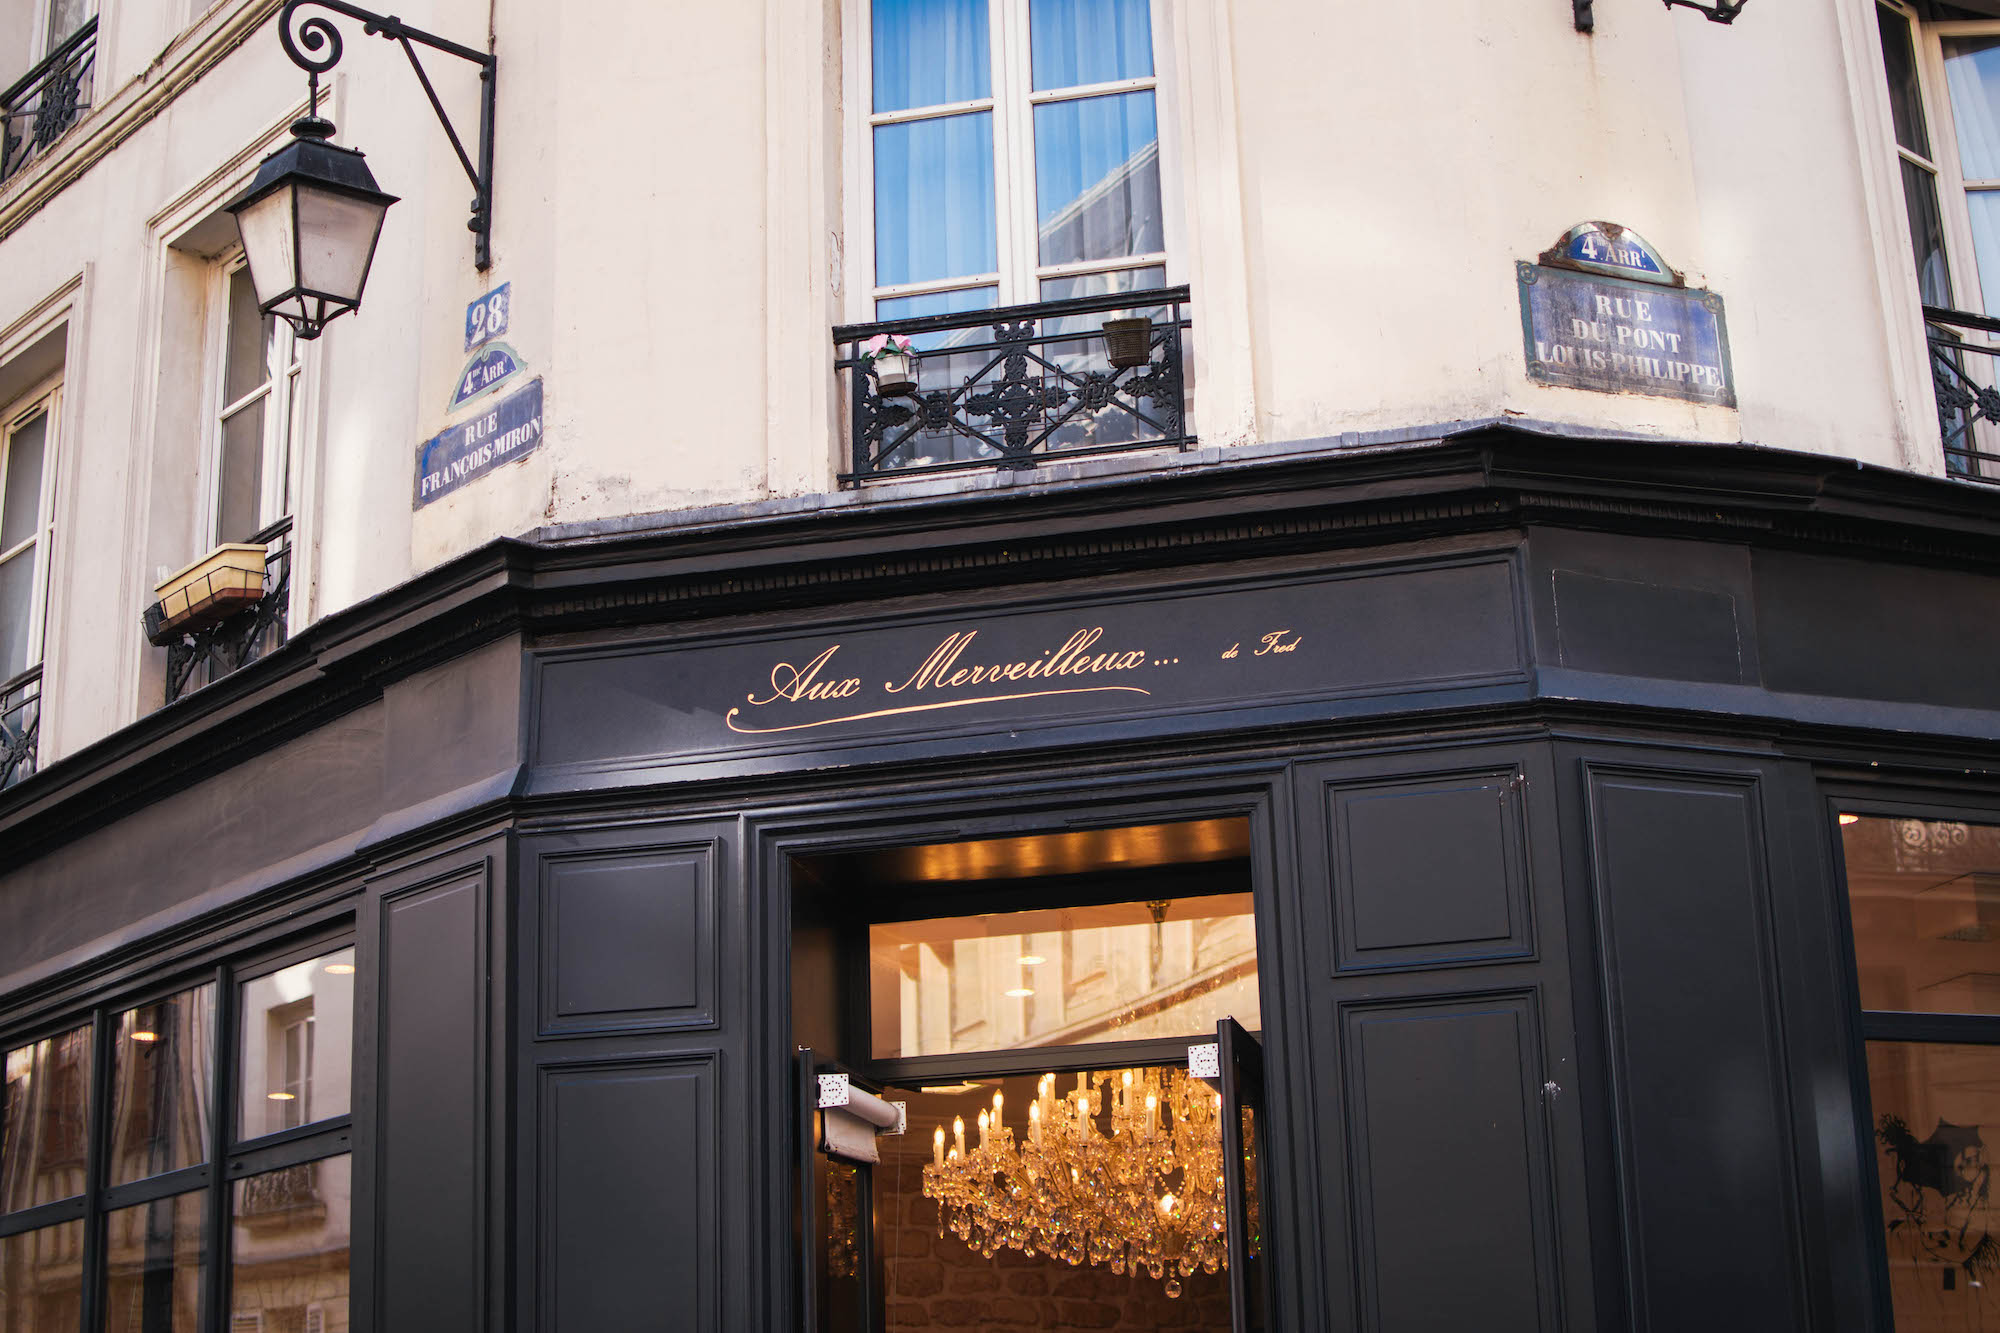 Aux Merveilleux de Fred, with a location in Paris' 4th arrondissement, is known for its delicate meringues. Step inside the shop to admire the pastries under the splendor of a crystal chandelier.